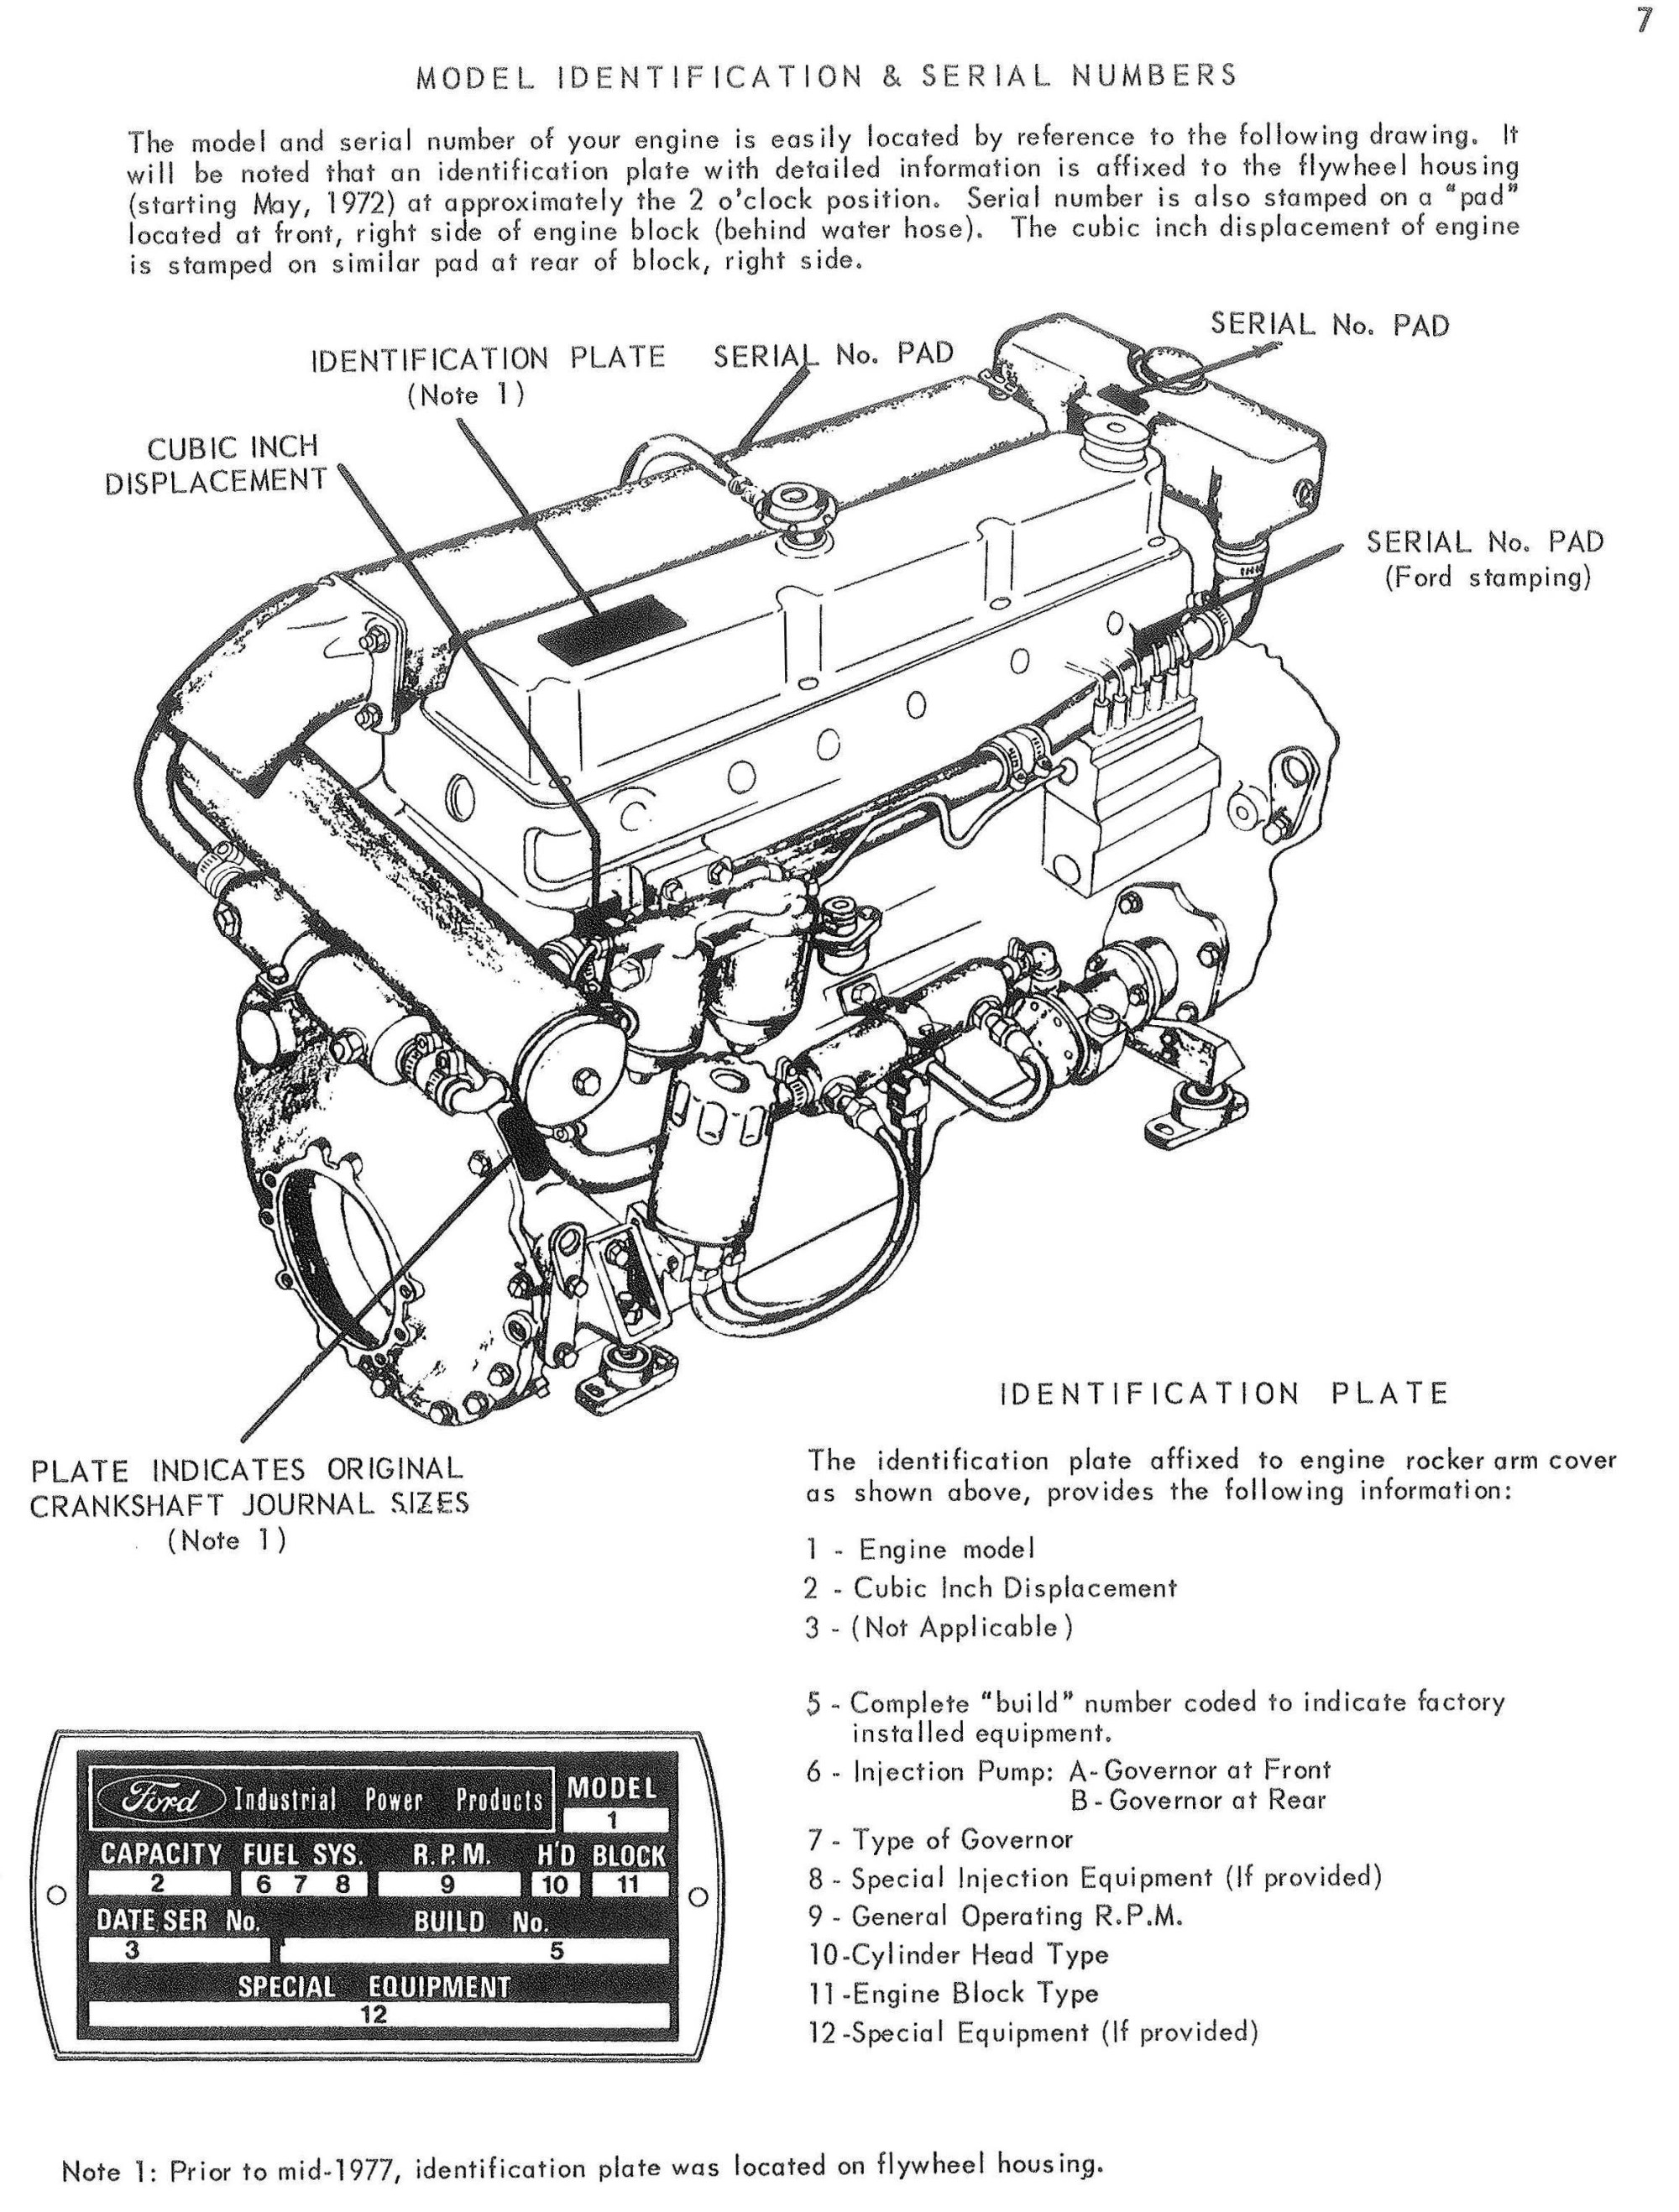 hight resolution of the number embossed on the ford industrial power products id plate in the date ser no box as shown on the bottom left of the above manual page is not the